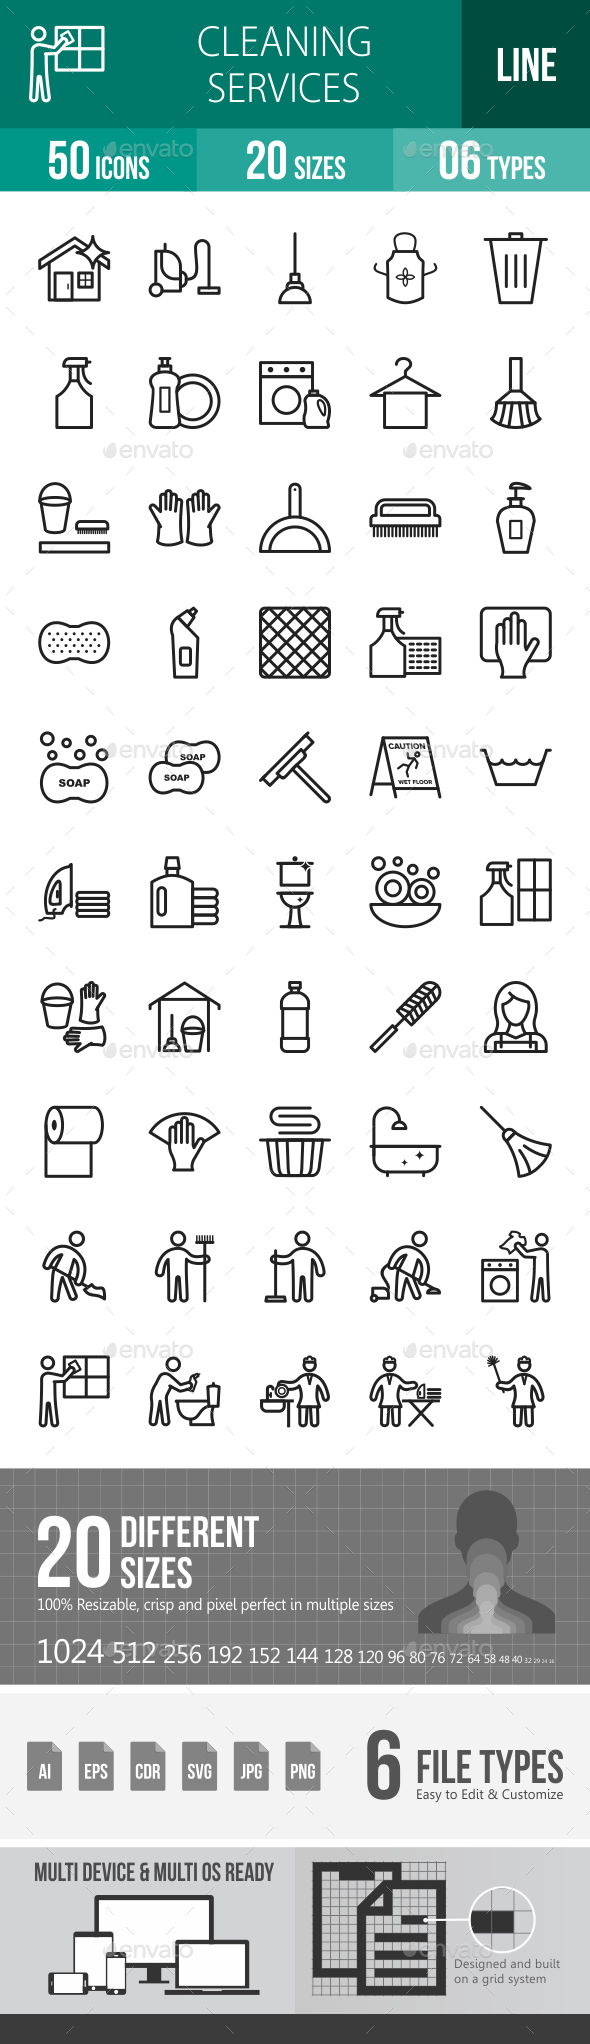 Cleaning Services Line Icons - Icons